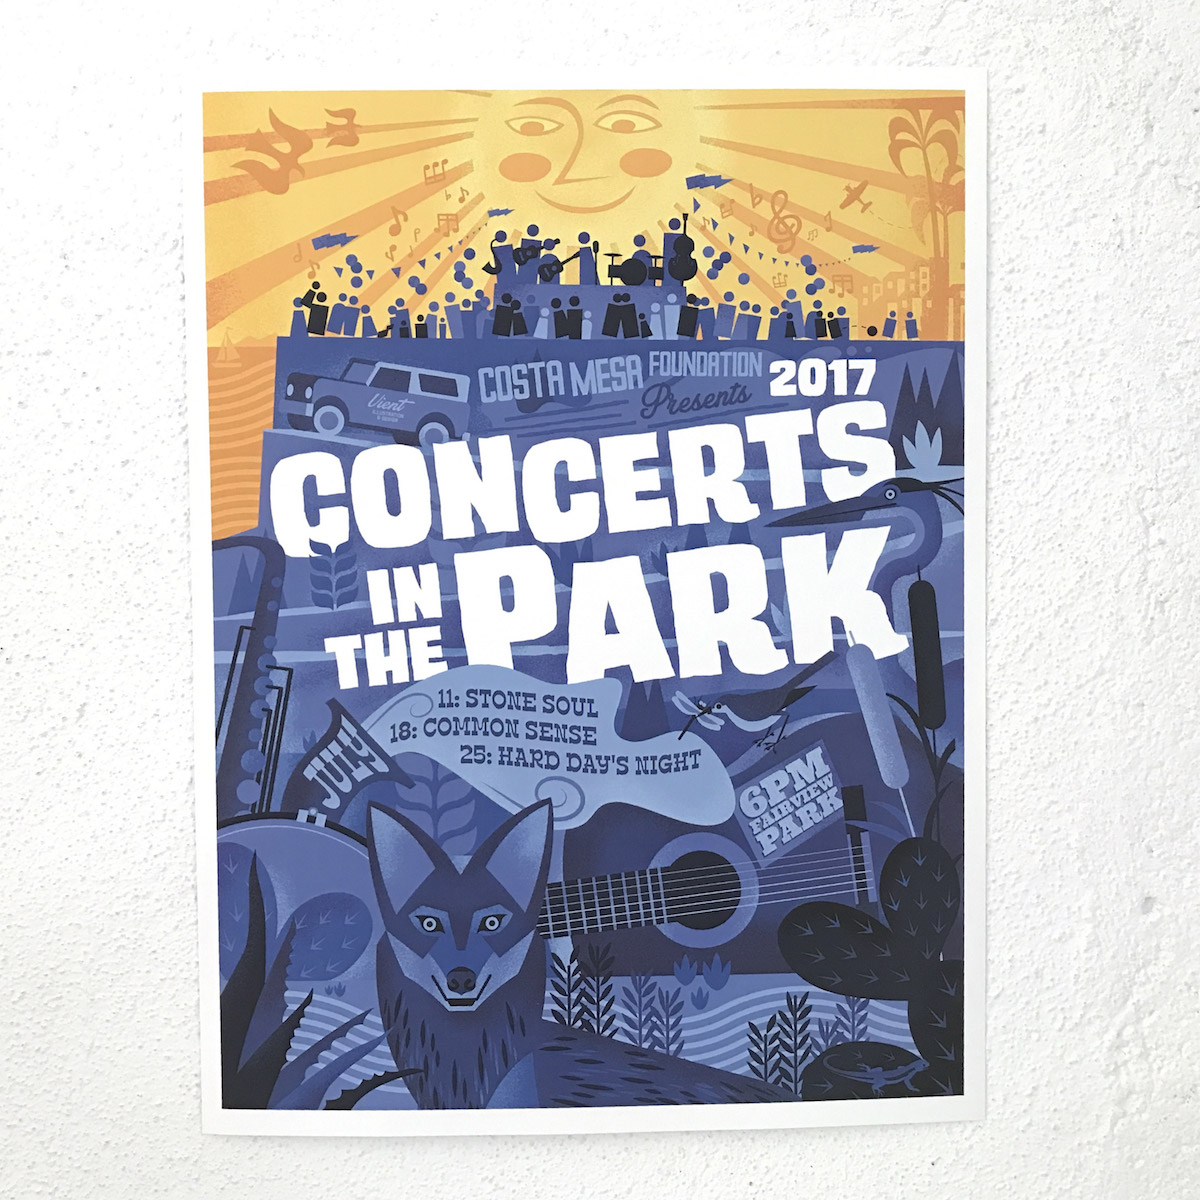 2017 Costa Mesa Concerts In The Park Poster Artwork By Artist Robby Vient of Vient Studios